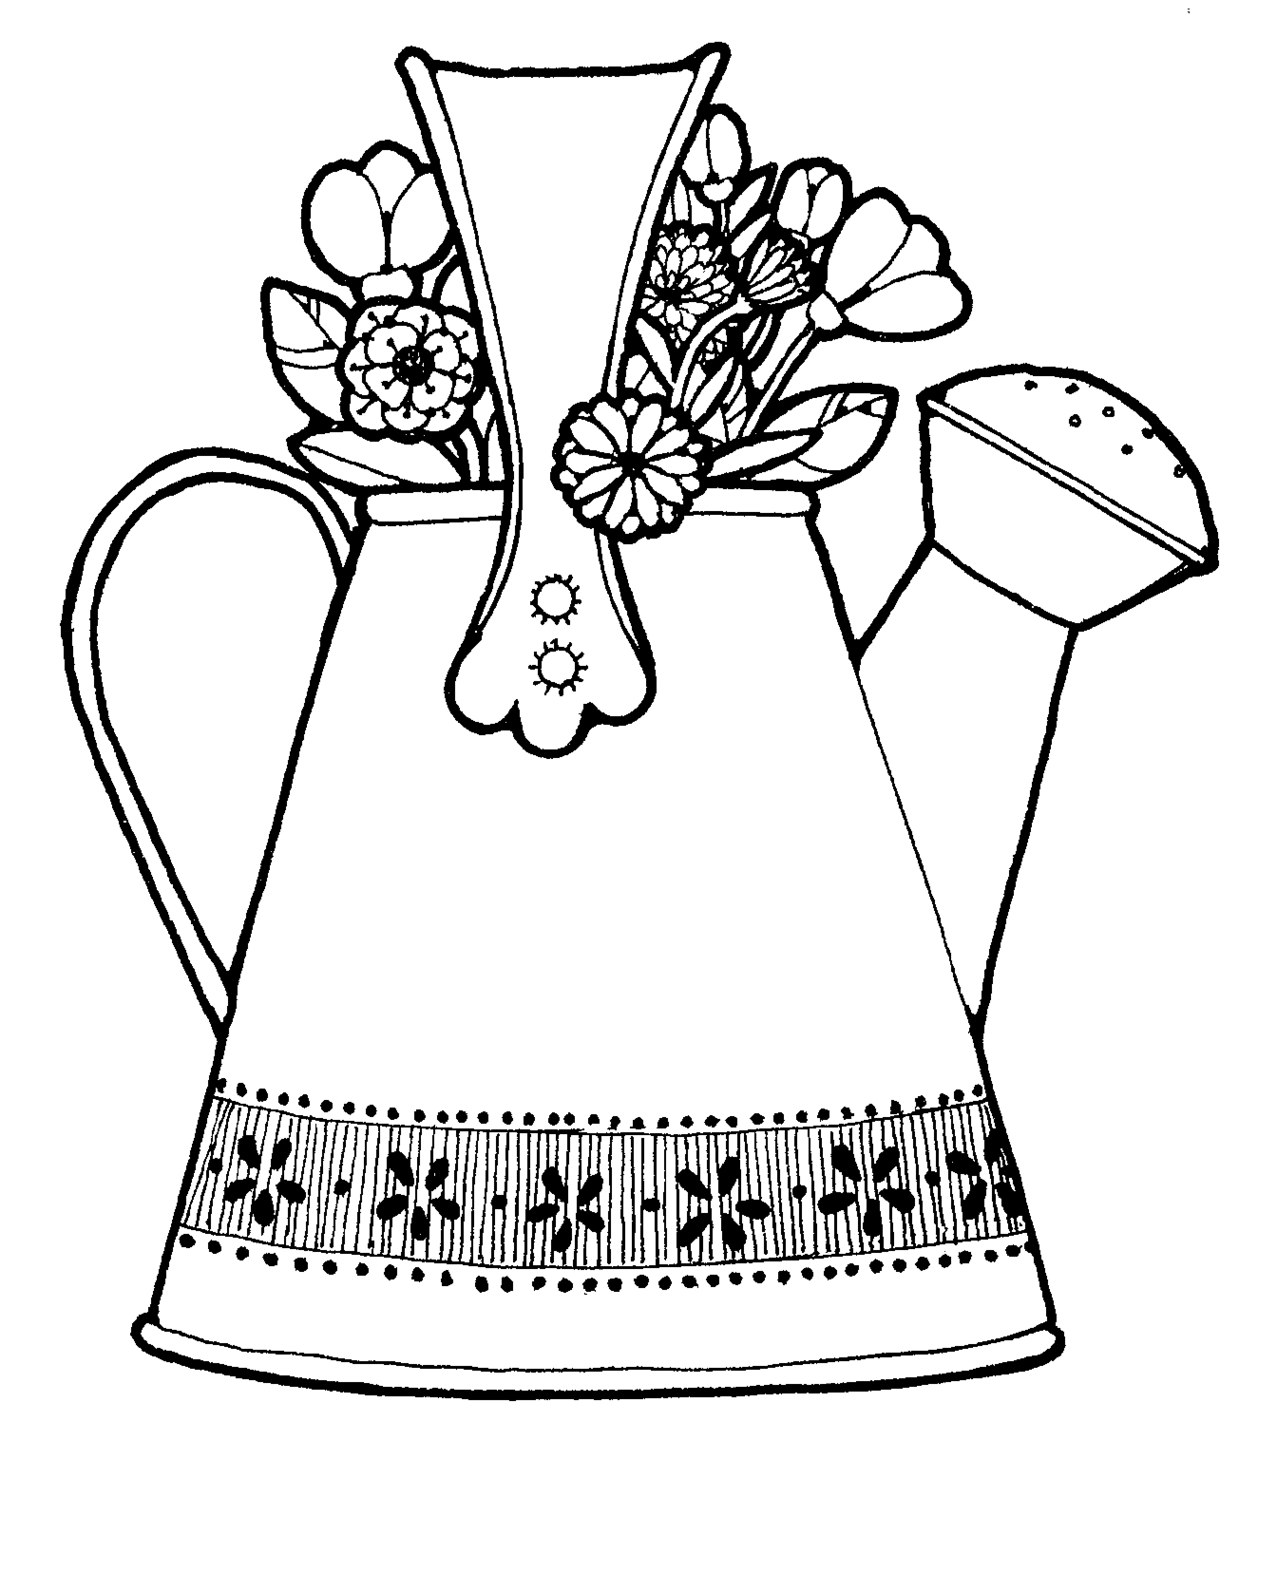 Watering can with flowers clipart black and white banner library stock Watering can colouring clipart - WikiClipArt banner library stock